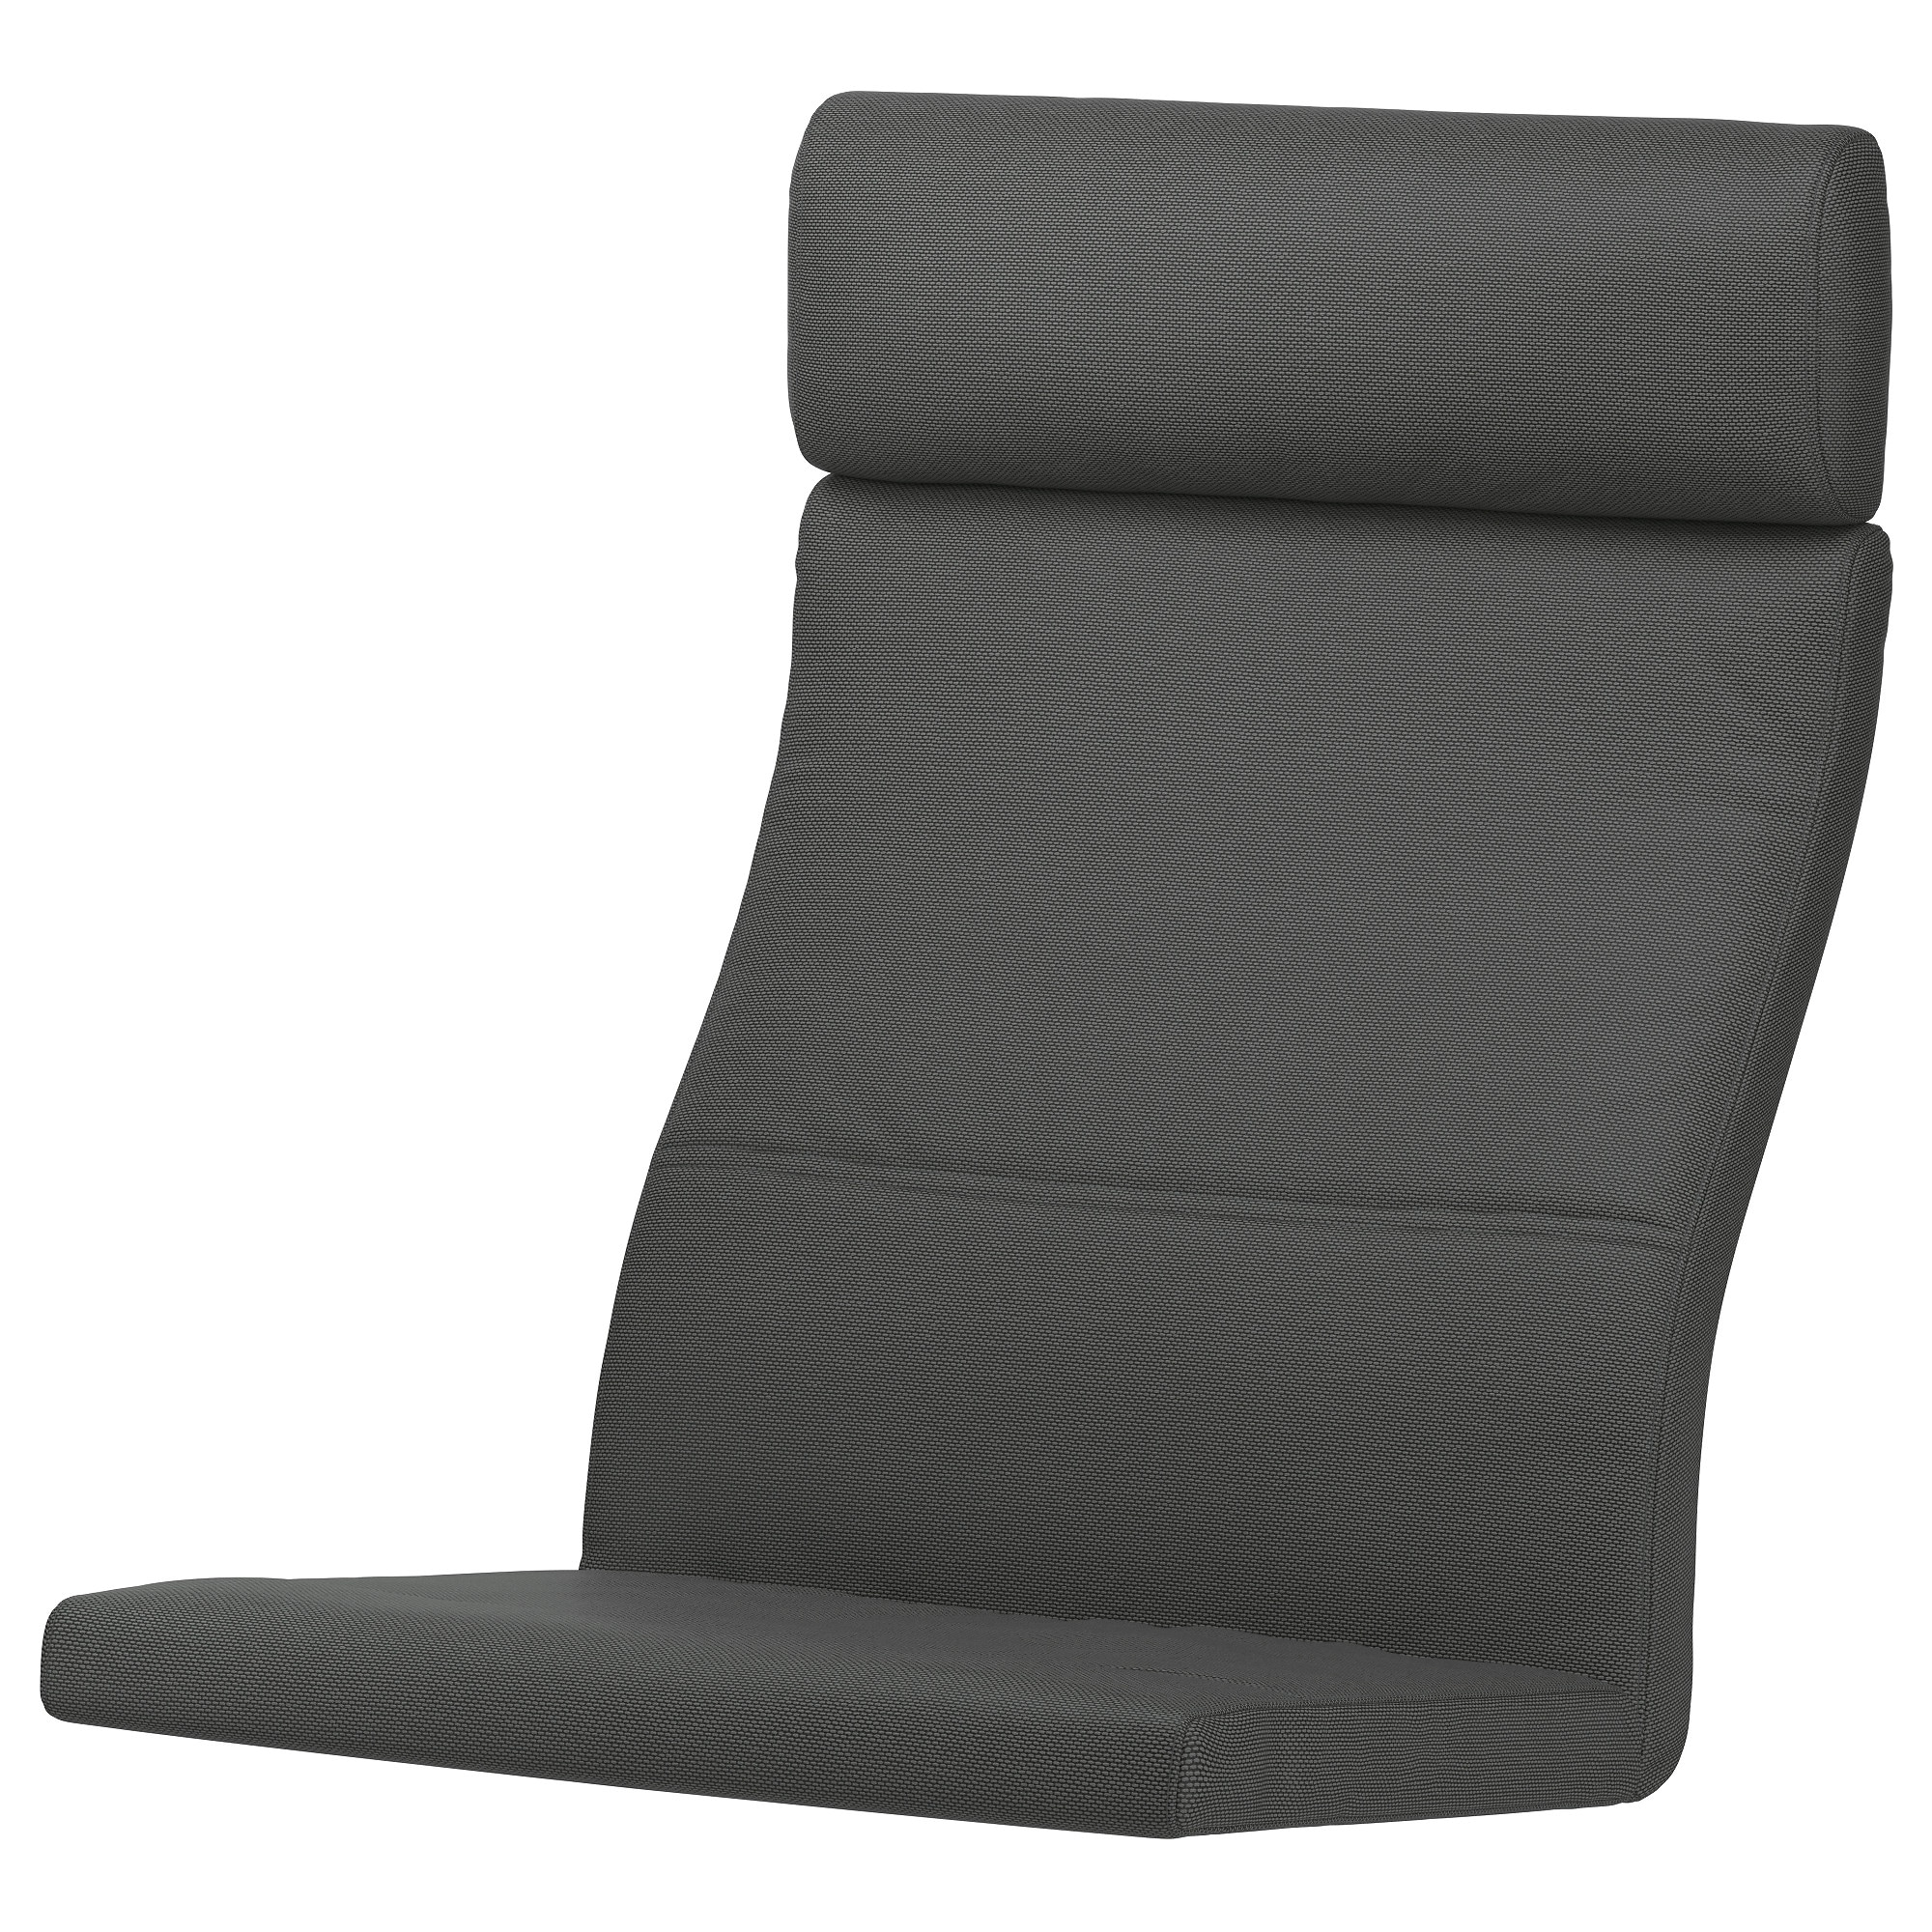 poa ng chair cushion hillared anthracite ikea